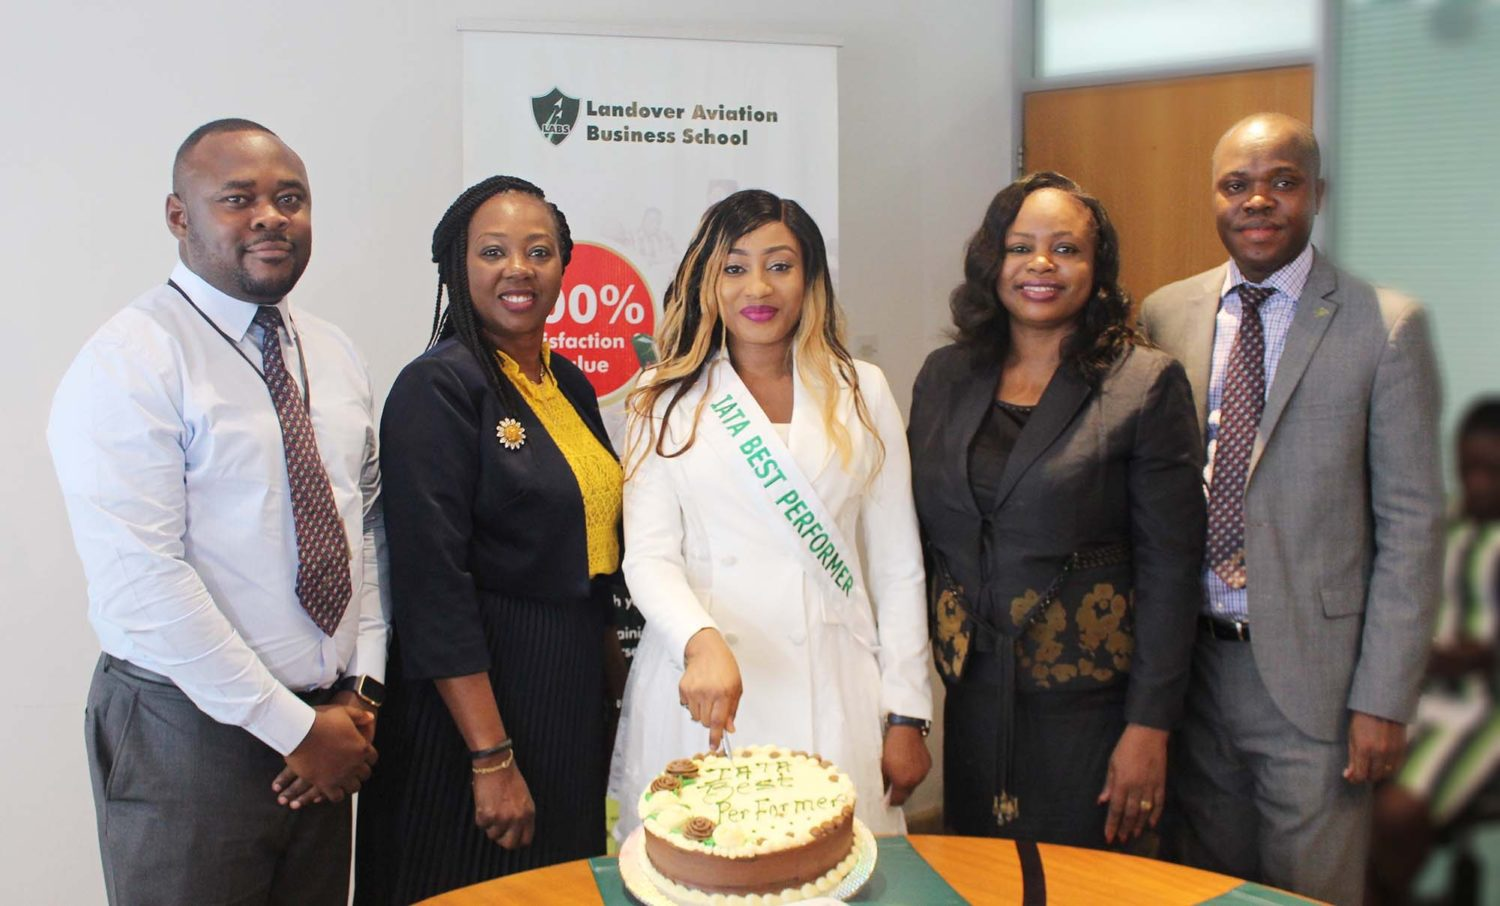 Photo Caption 2:    L-R: Mr. Mobolaji Durojaiye, Business Manager, Landover Aviation Business School (LABS); Mrs. Aduke Atiba, Executive Director, Landover Company Limited; Ms. Adeola Alade, 2018 IATA Best Performer in Nigeria and graduate of LABS; Mrs. Aderonke Emmanuel-James, Manager, Corporate Services, Landover Company Limited; and Mr. Tunde Adeniyi, Business Manager, Operations, Landover Company Limited, at the presentation of the 2018 IATA Best Performer Award in Nigeria, at the School in Lagos, recently